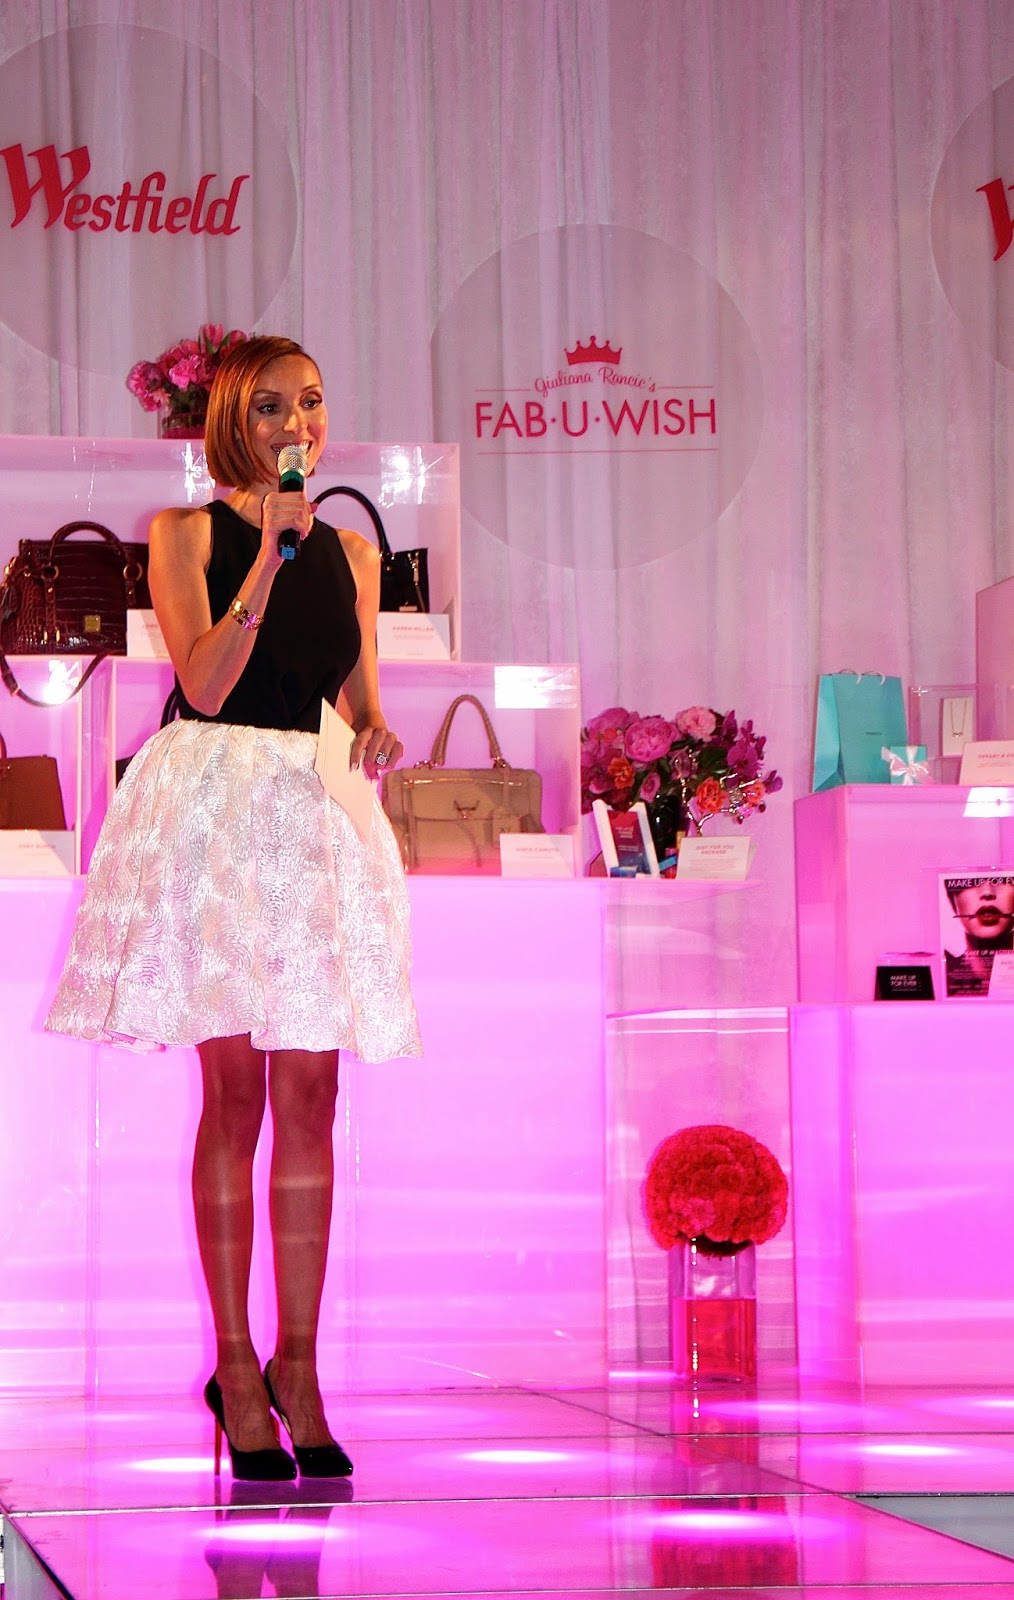 Fashionably Petite The Pink Party Fab U Wishes Do Come True With Giuliana Rancic